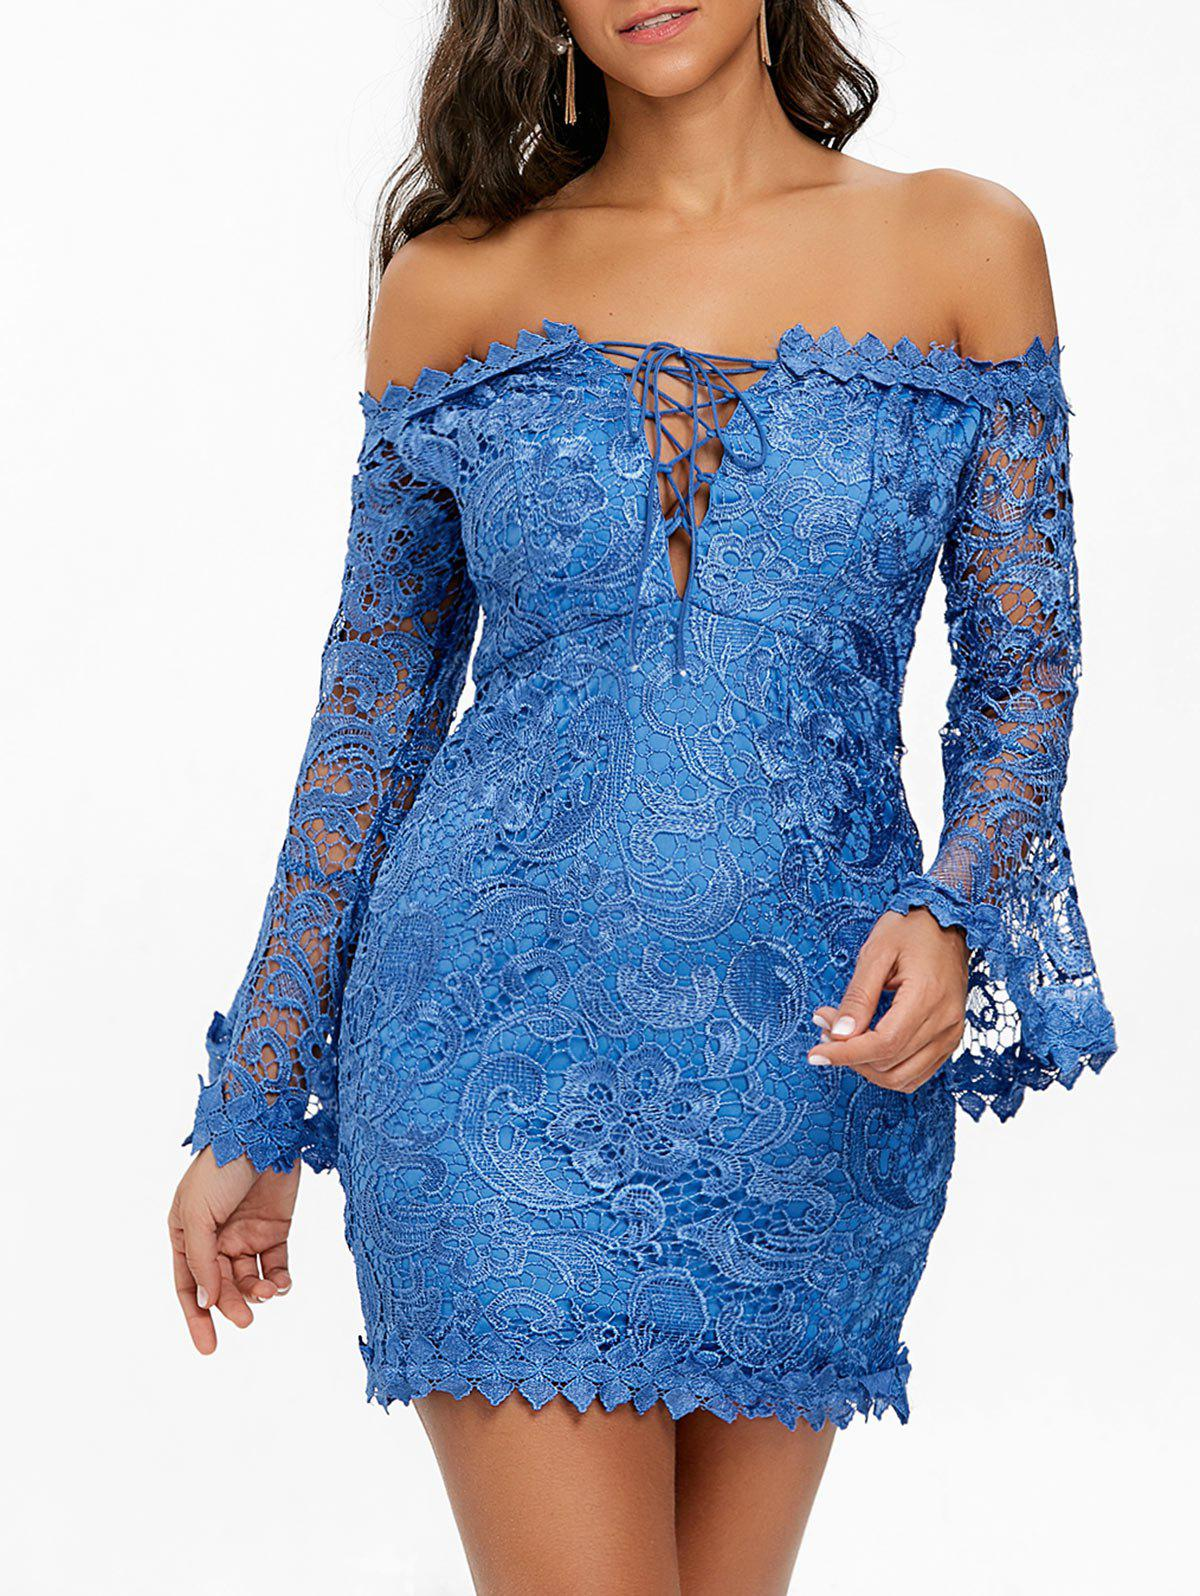 Lace Off The Shoulder Mini Dress - BLUE M